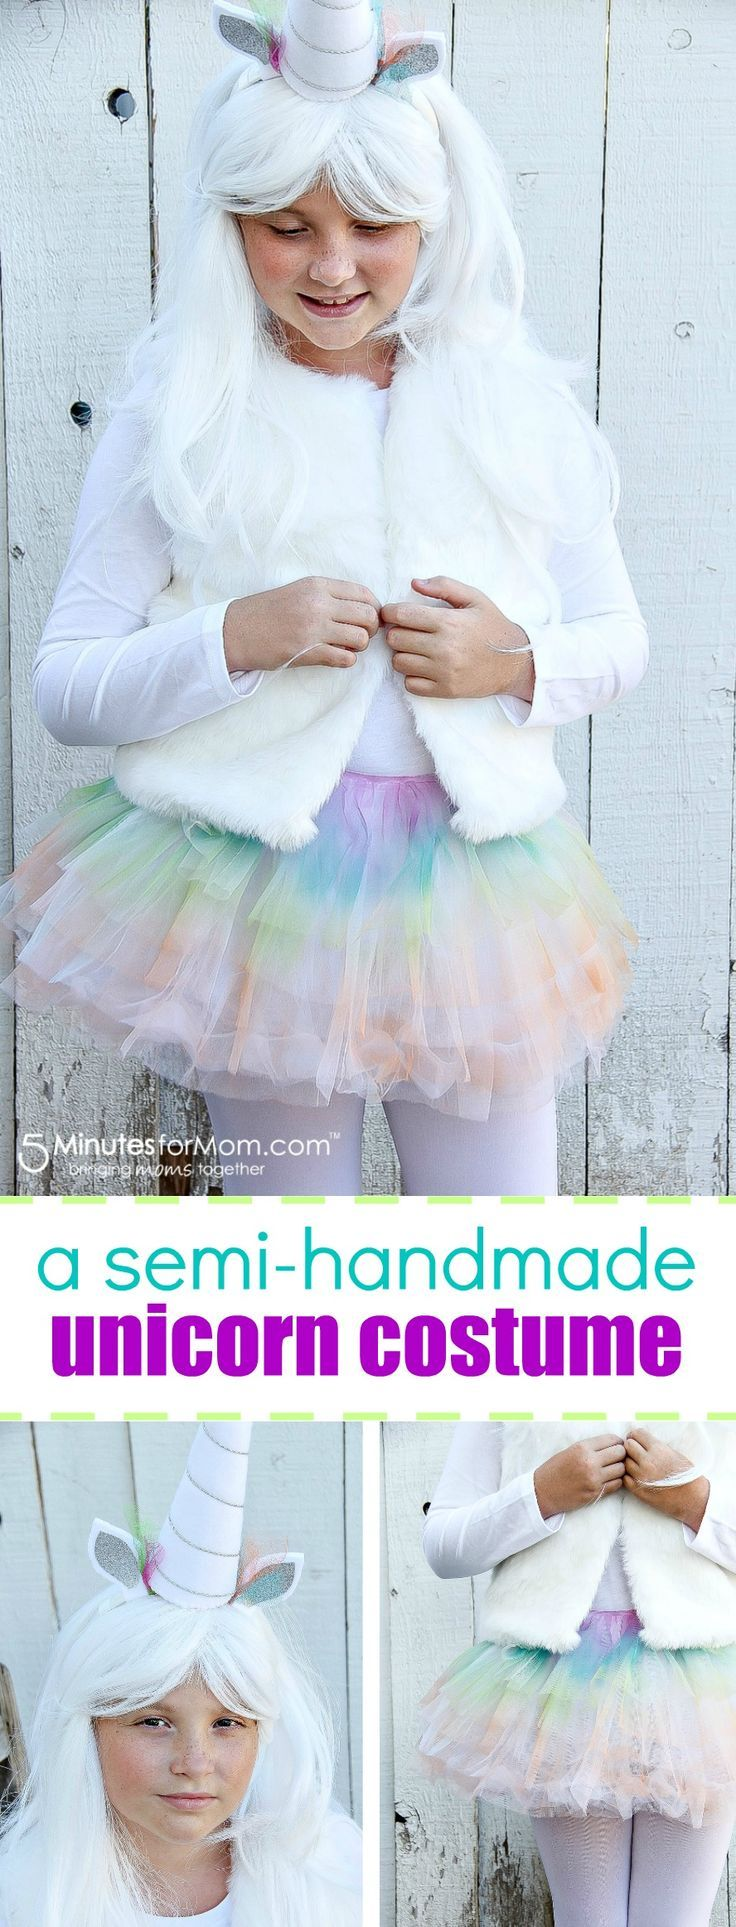 How To Make an Easy Unicorn Costume for Kids | This is such a cute idea for a simple DiY Halloween costume!